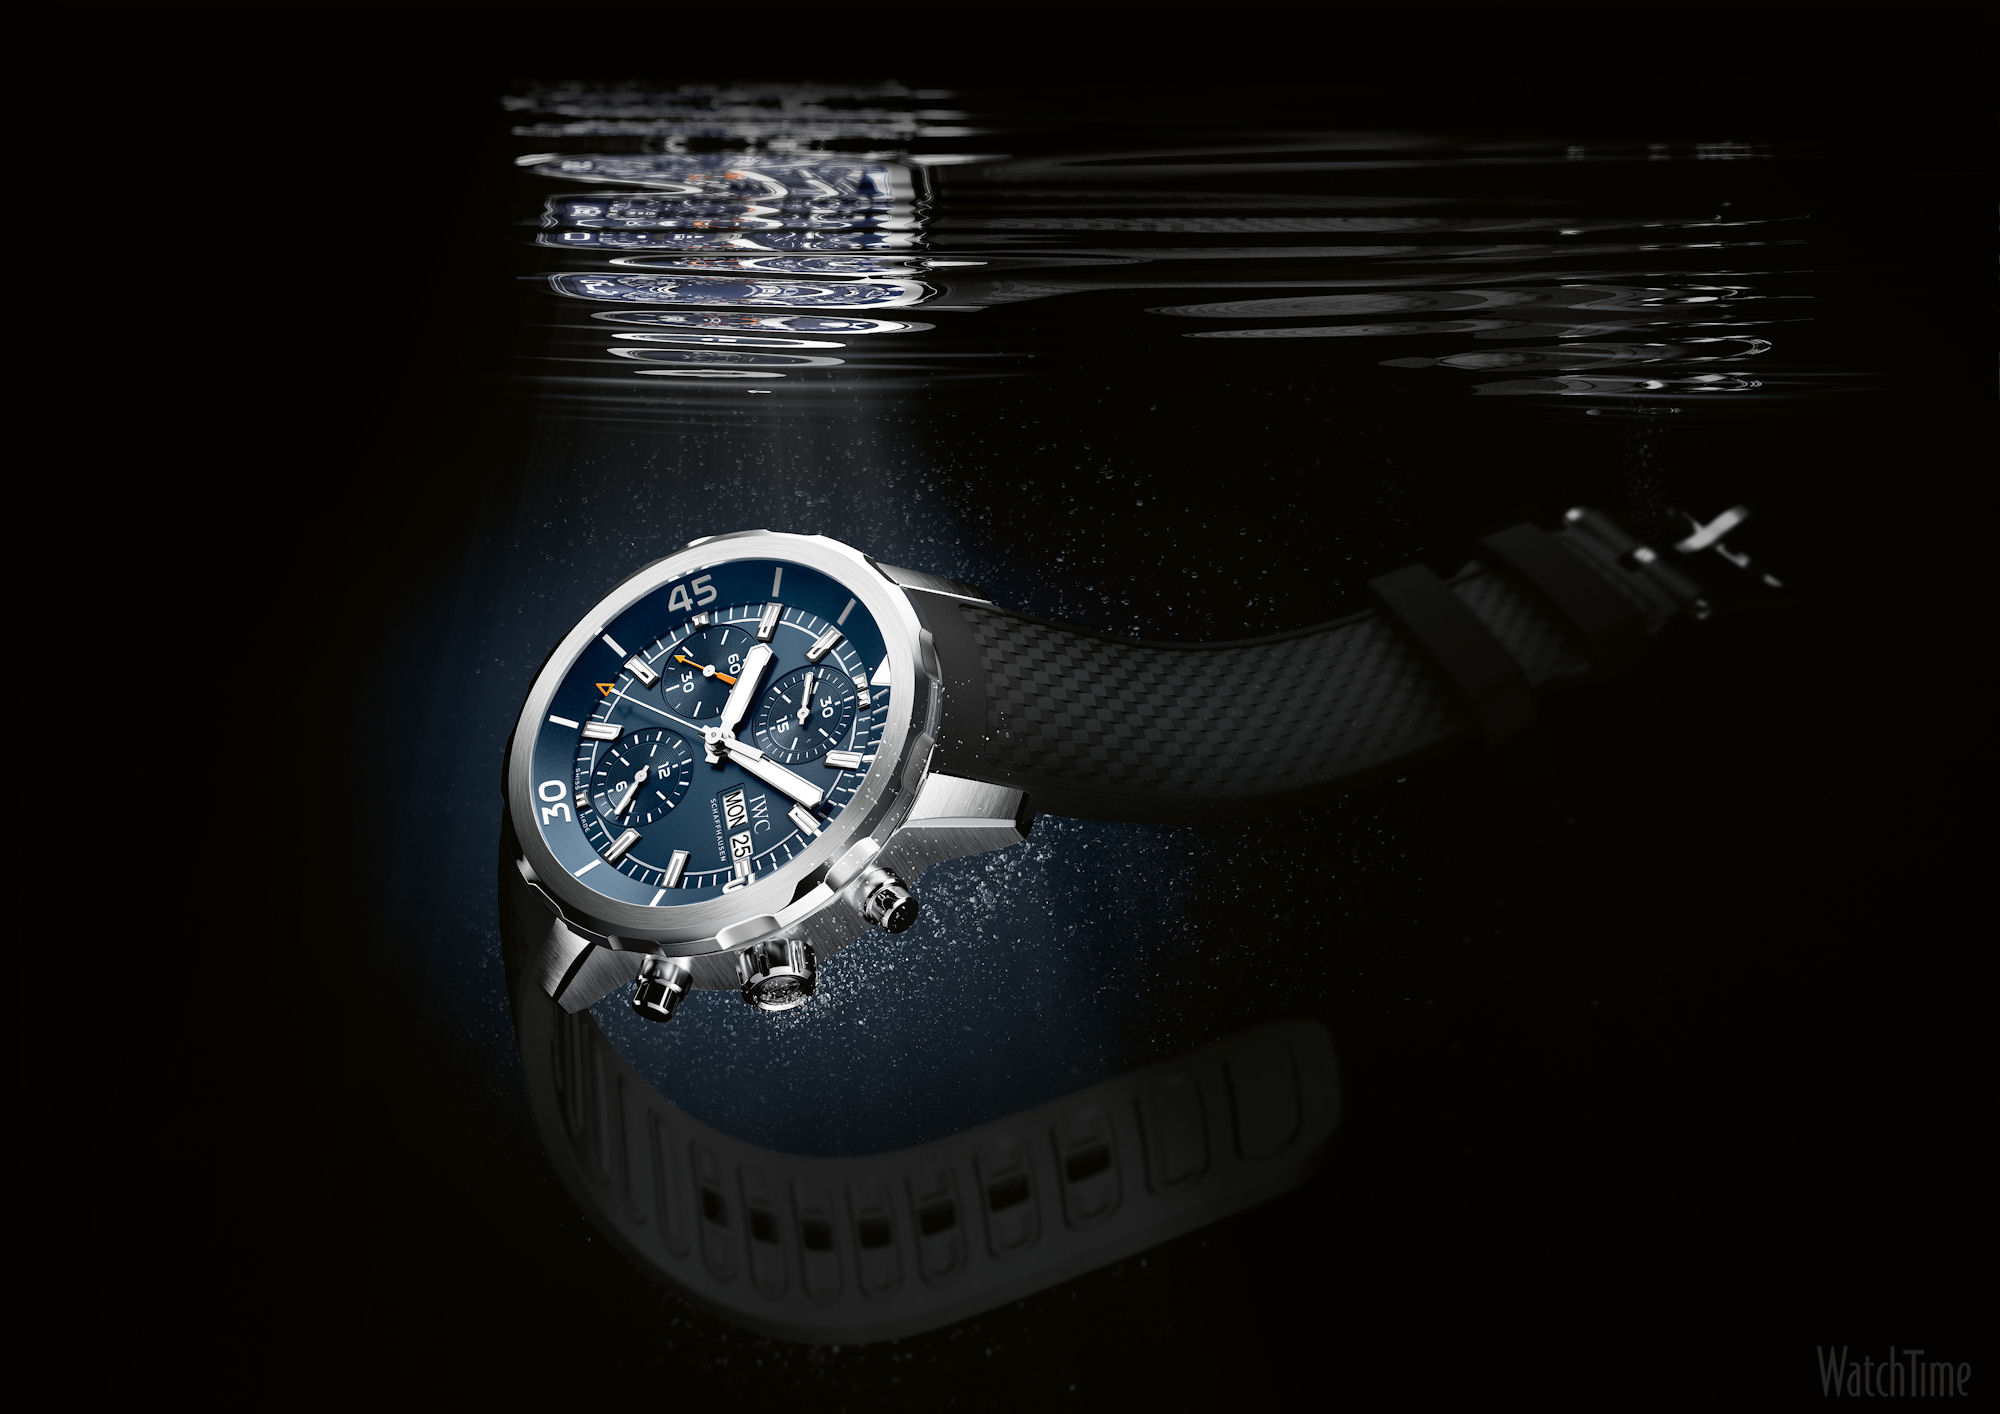 Watch Wallpaper: 6 New IWC Aquatimers From SIHH 2014 › WatchTime ...